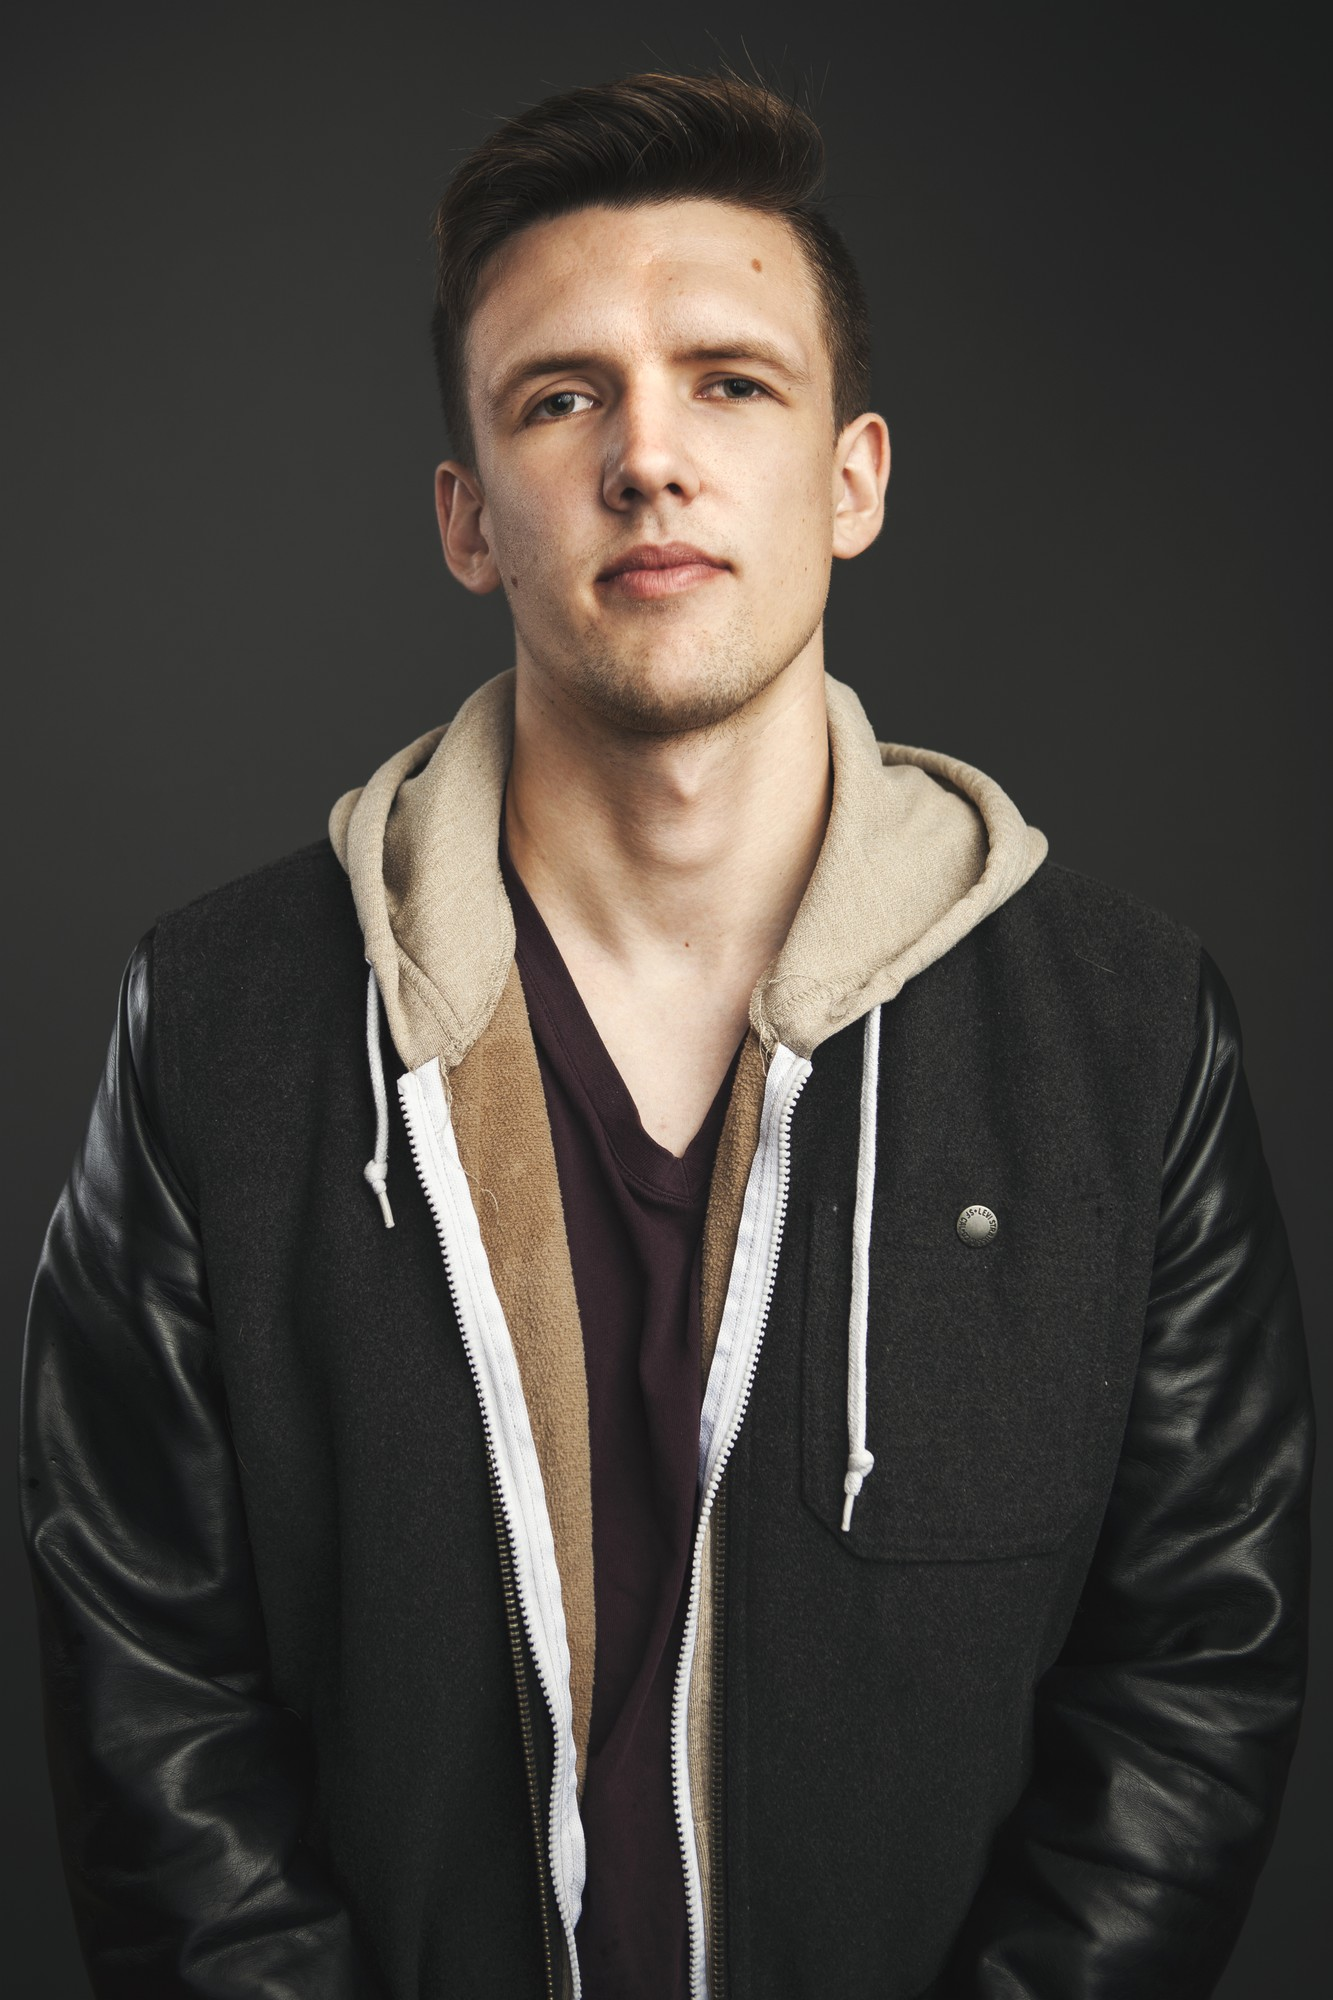 Luke Joachim A'14 performs under the name DJ Coolhand, and he is performing again in New Orleans at Baracadia on Dec. 10 from 10 p.m. to 2 a.m. (Courtesy of Zach Breaux)